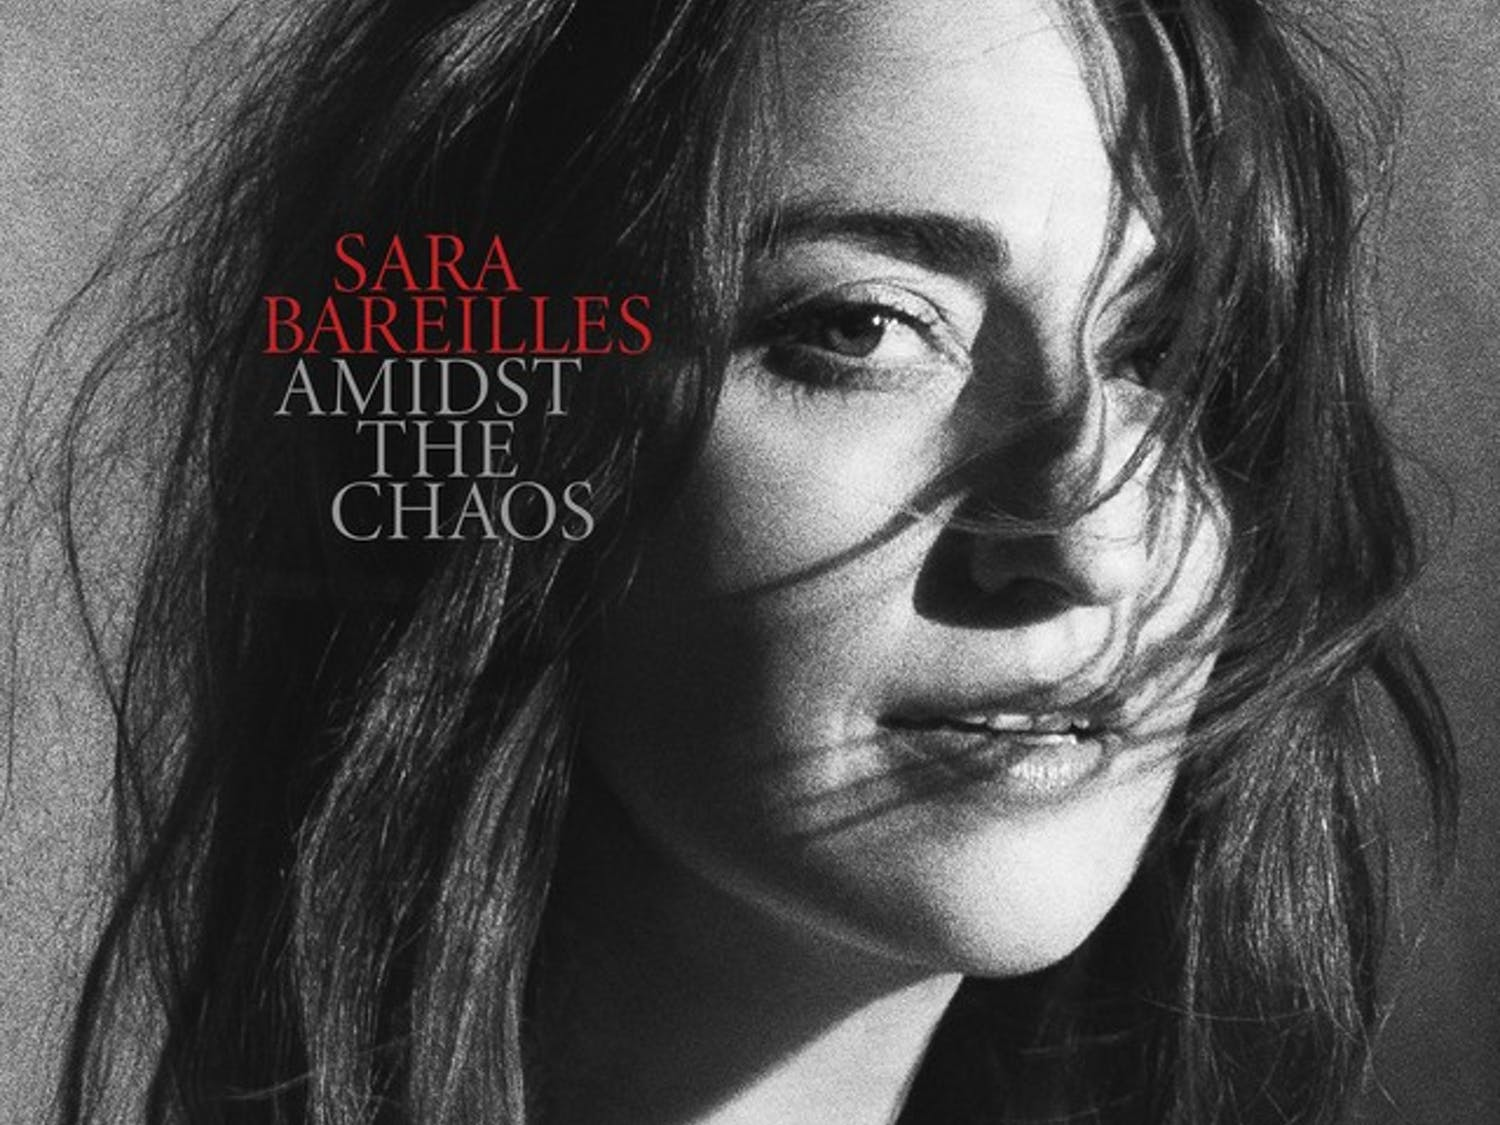 After six years, Sara Bareilles returned with Amidst the Chaos — a revelatory search for love and unity in places of defiance through powerful ballads and infectious rhythms.